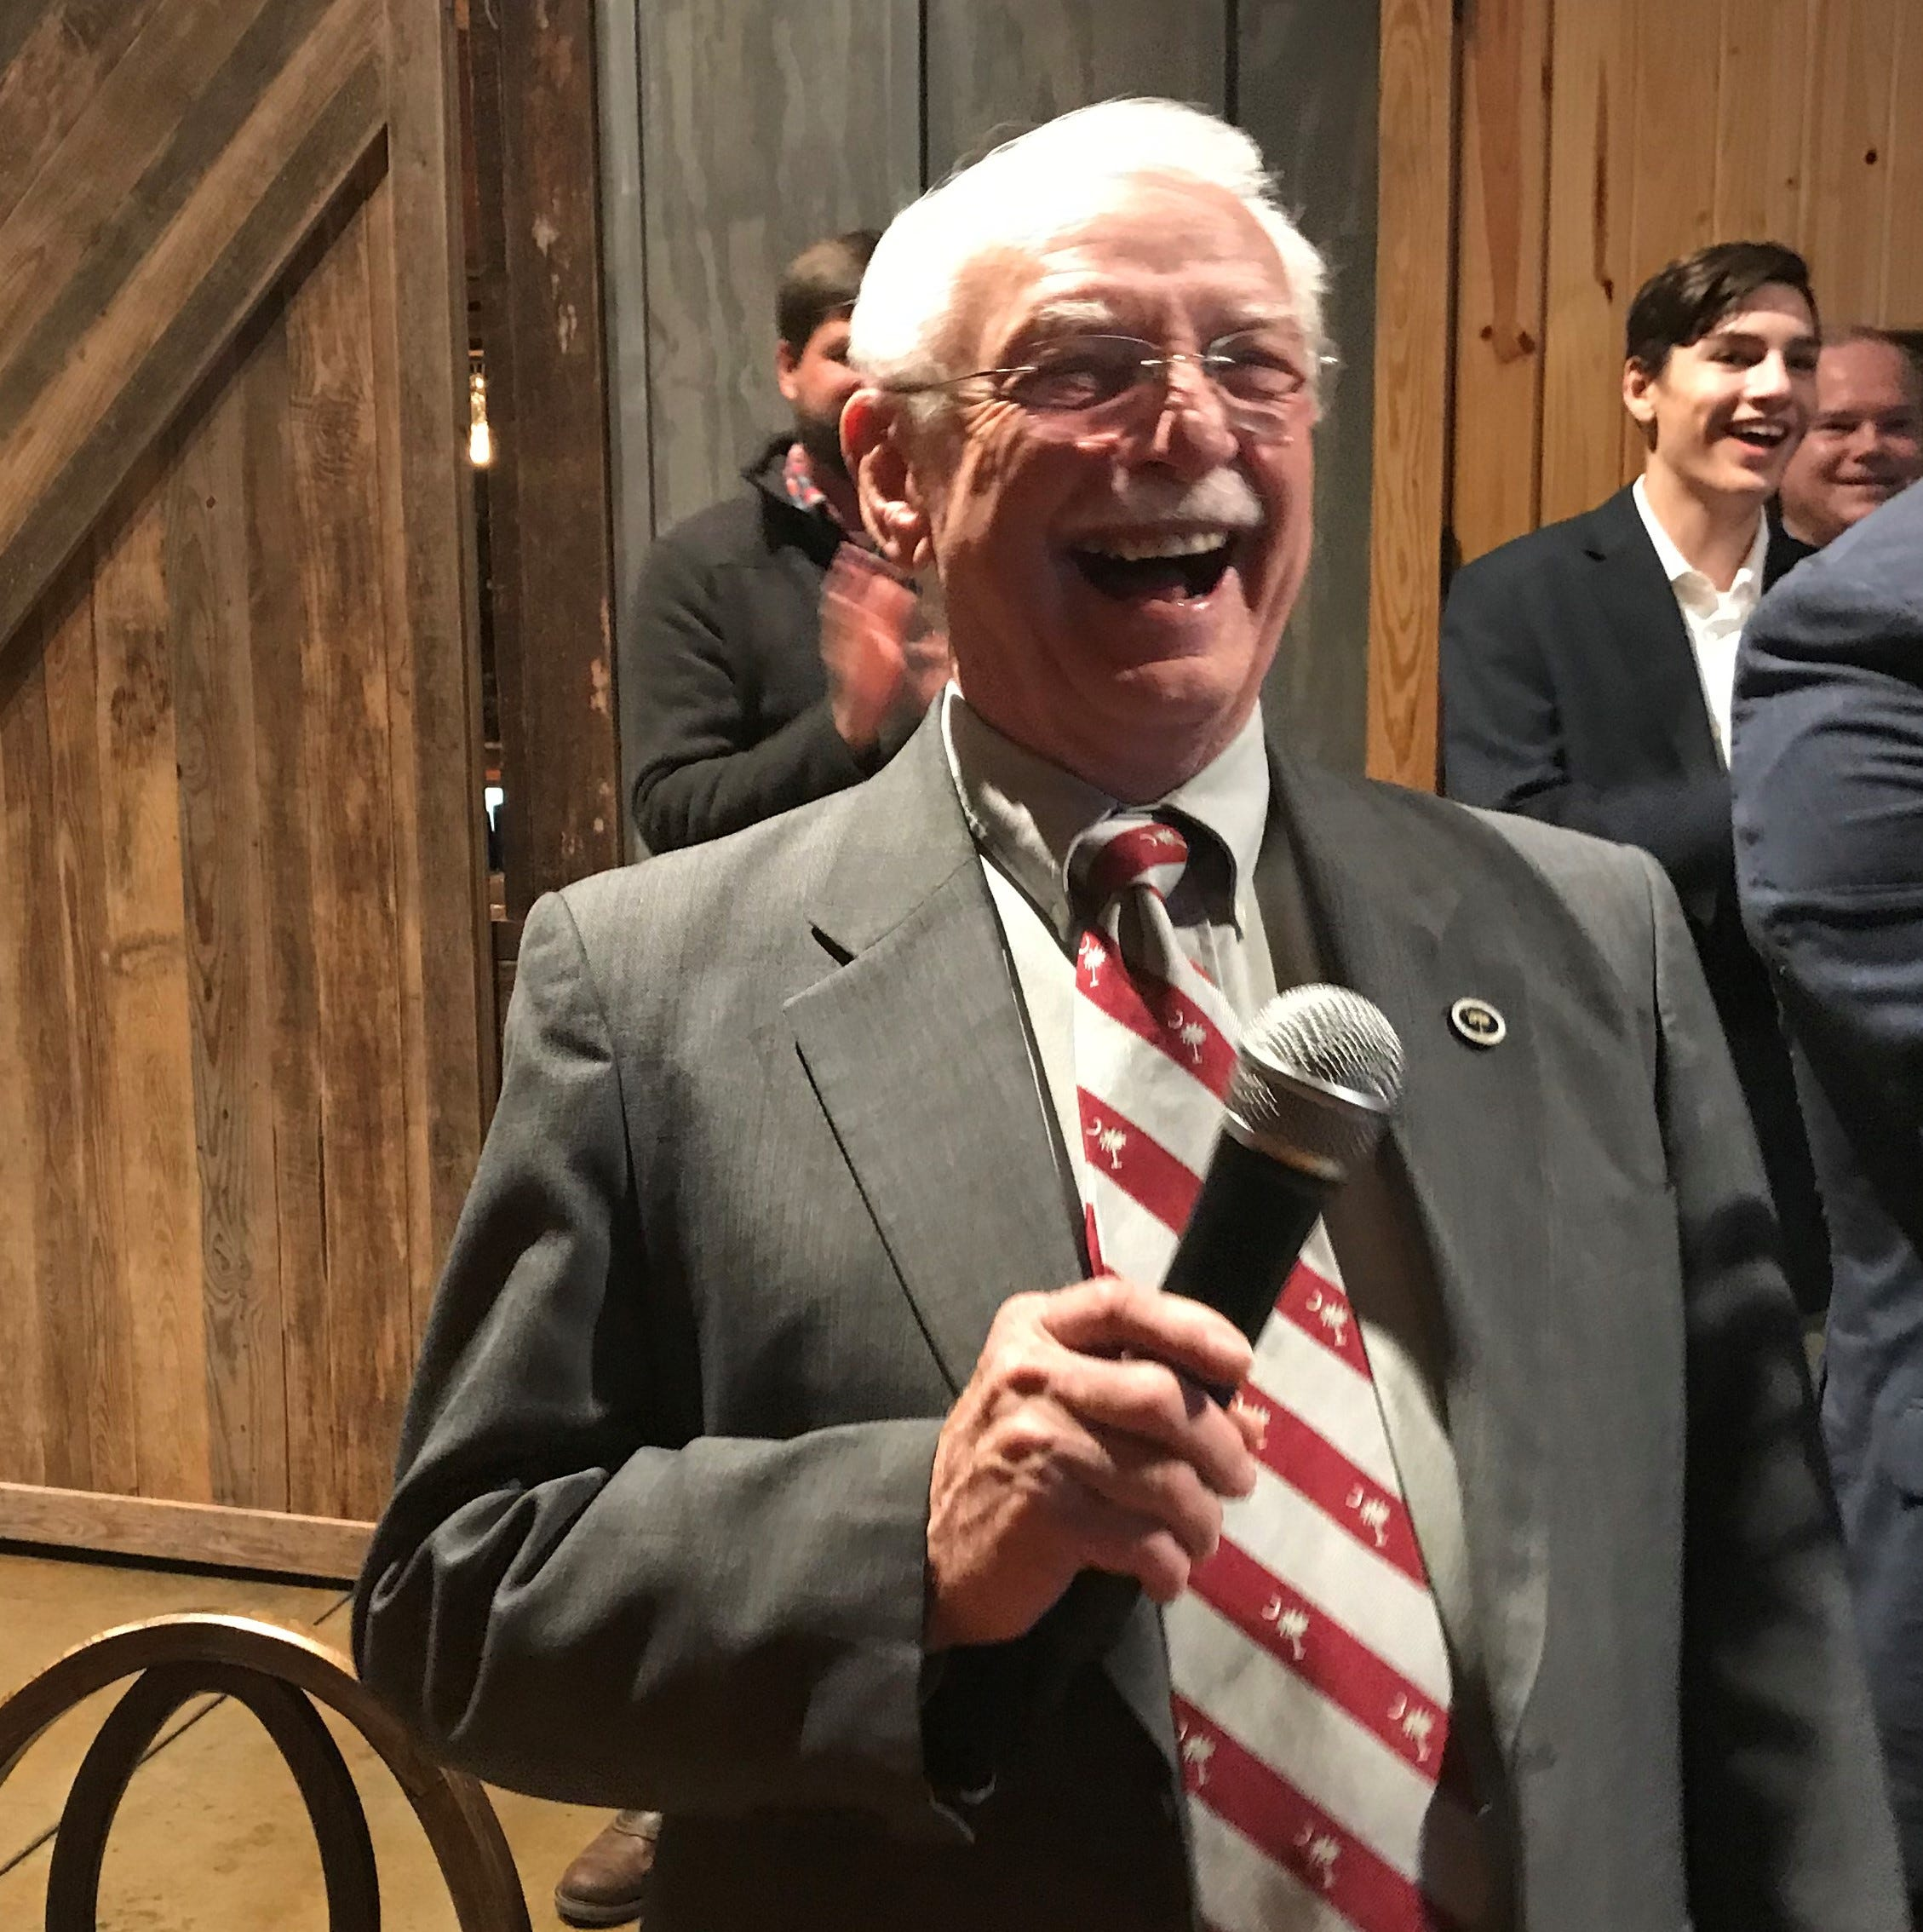 Dwight Loftis wins SC Senate District 6 Republican primary